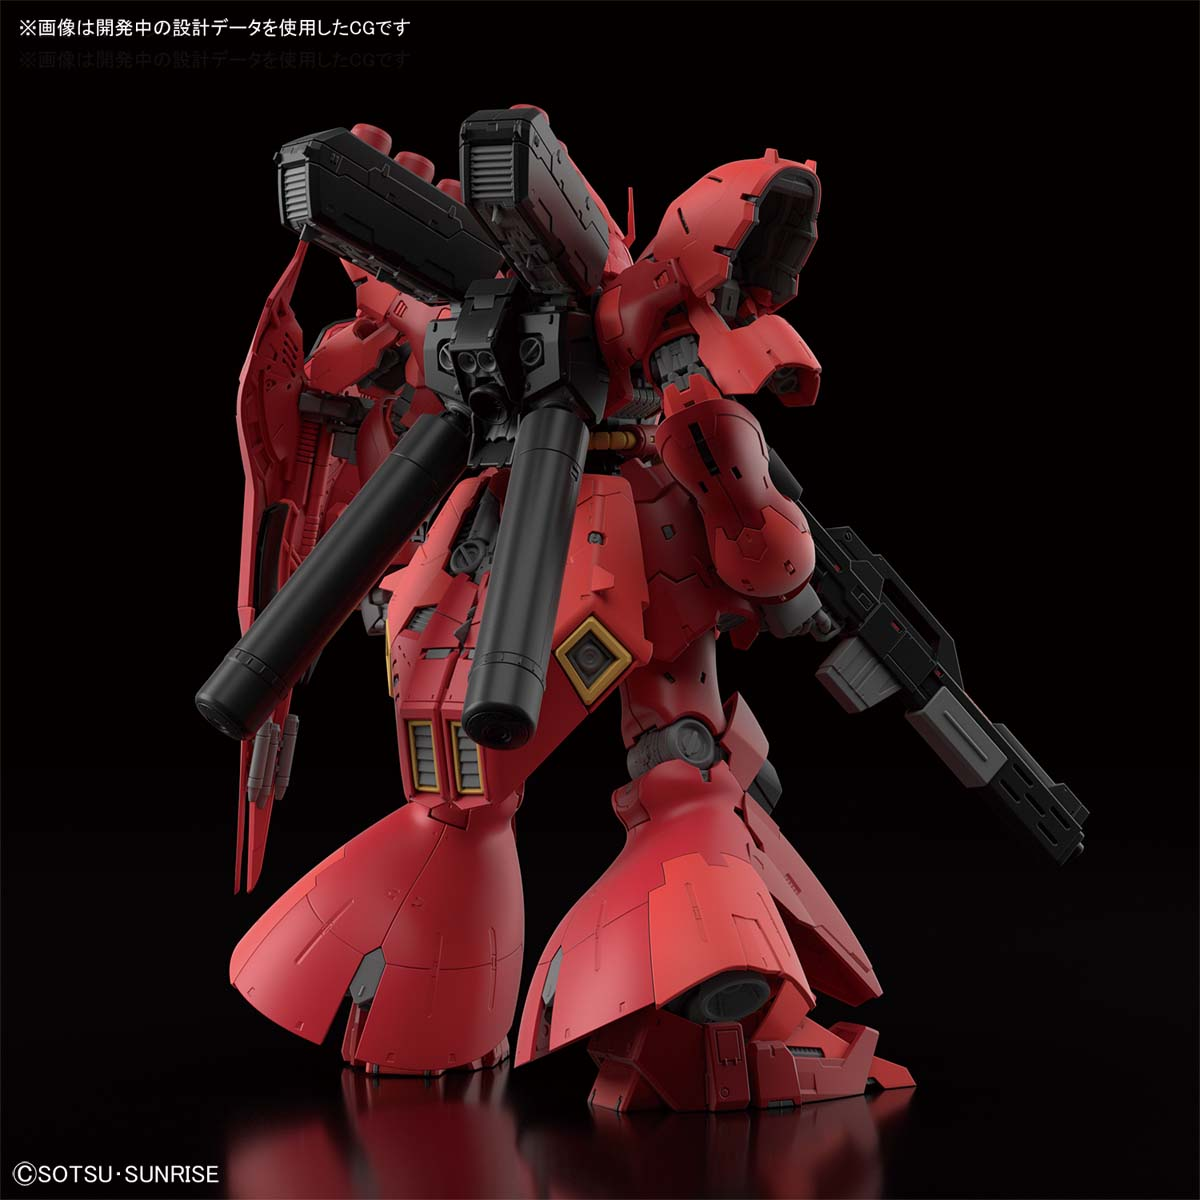 Bandai RG Sazabi Model Kit